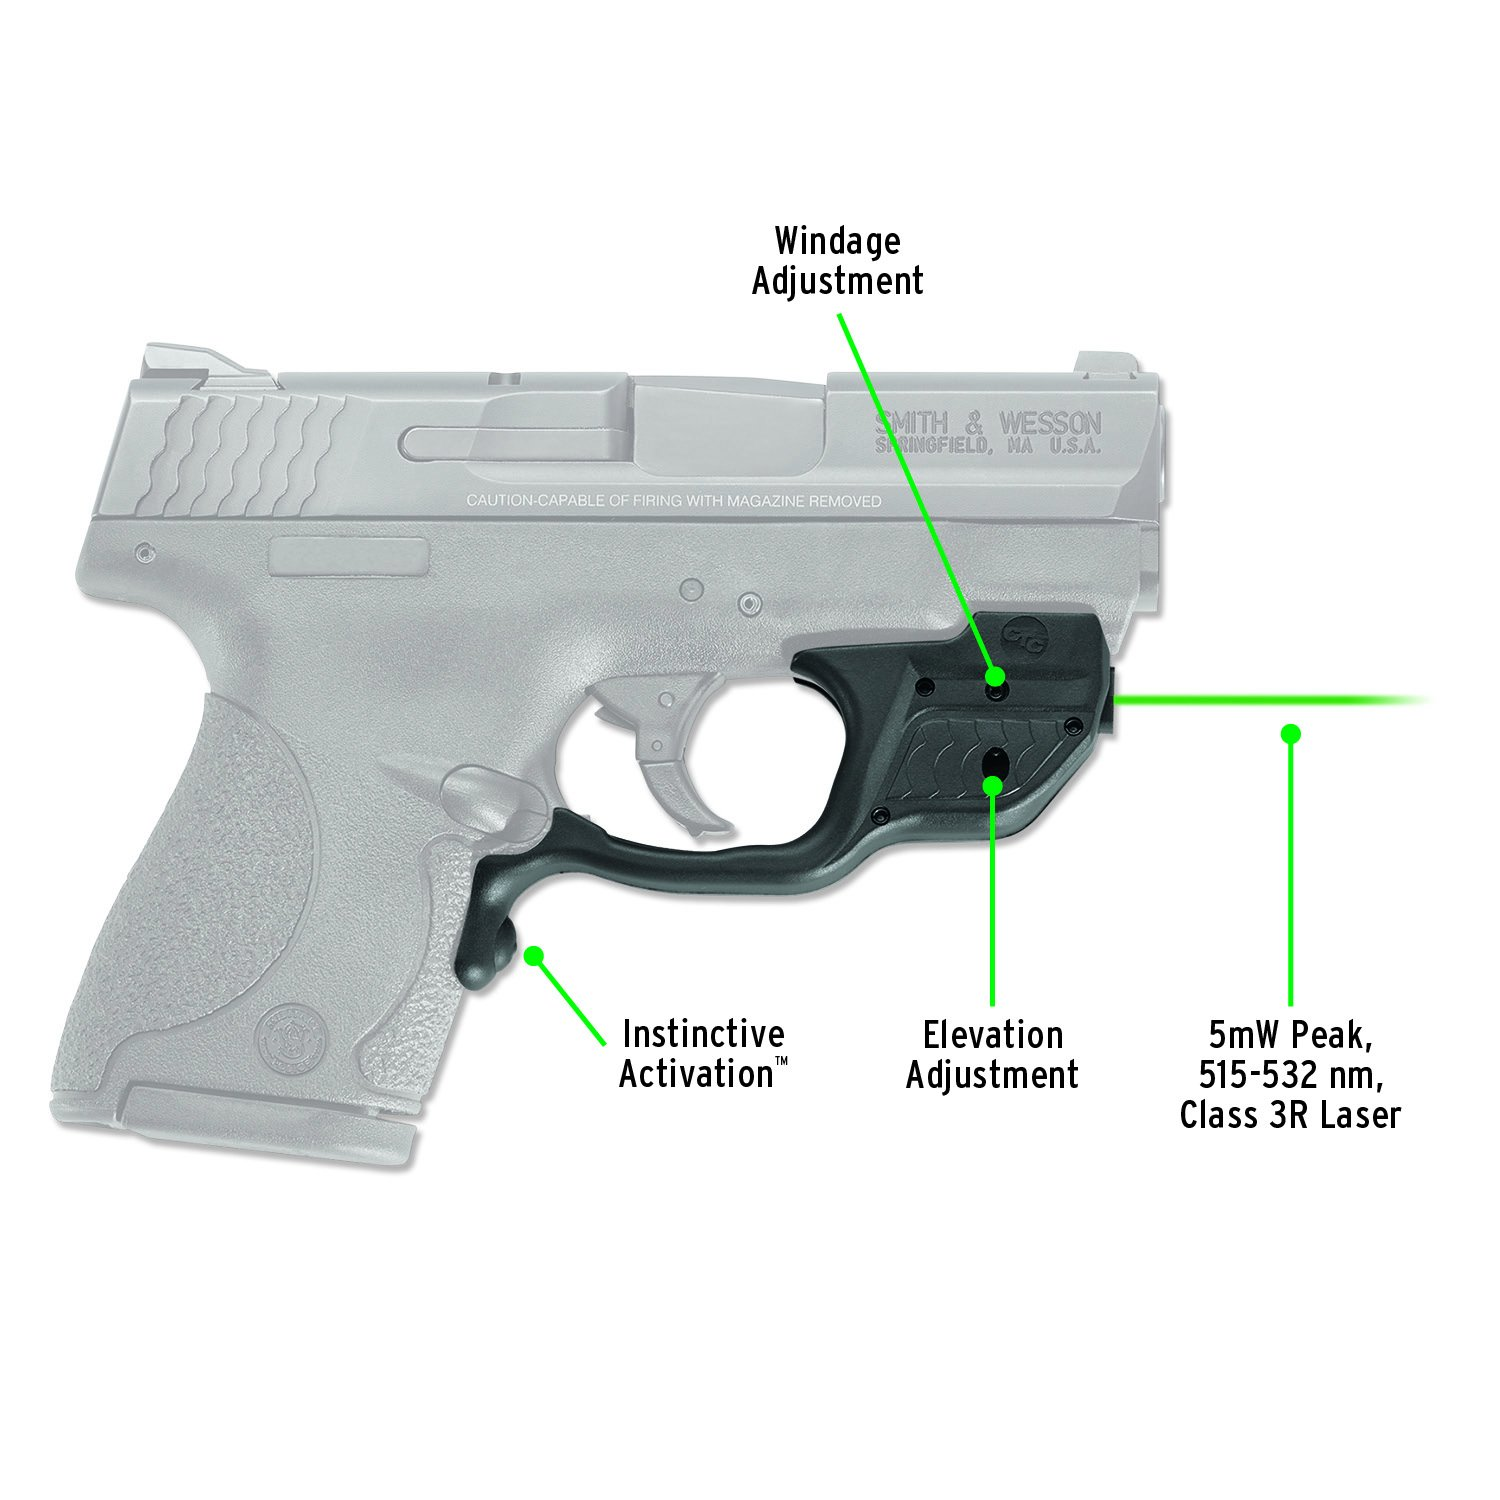 Crimson Trace LG-489G Laserguard Green Laser Sight for Smith & Wesson M&P Shield Pistols by Crimson Trace (Image #1)